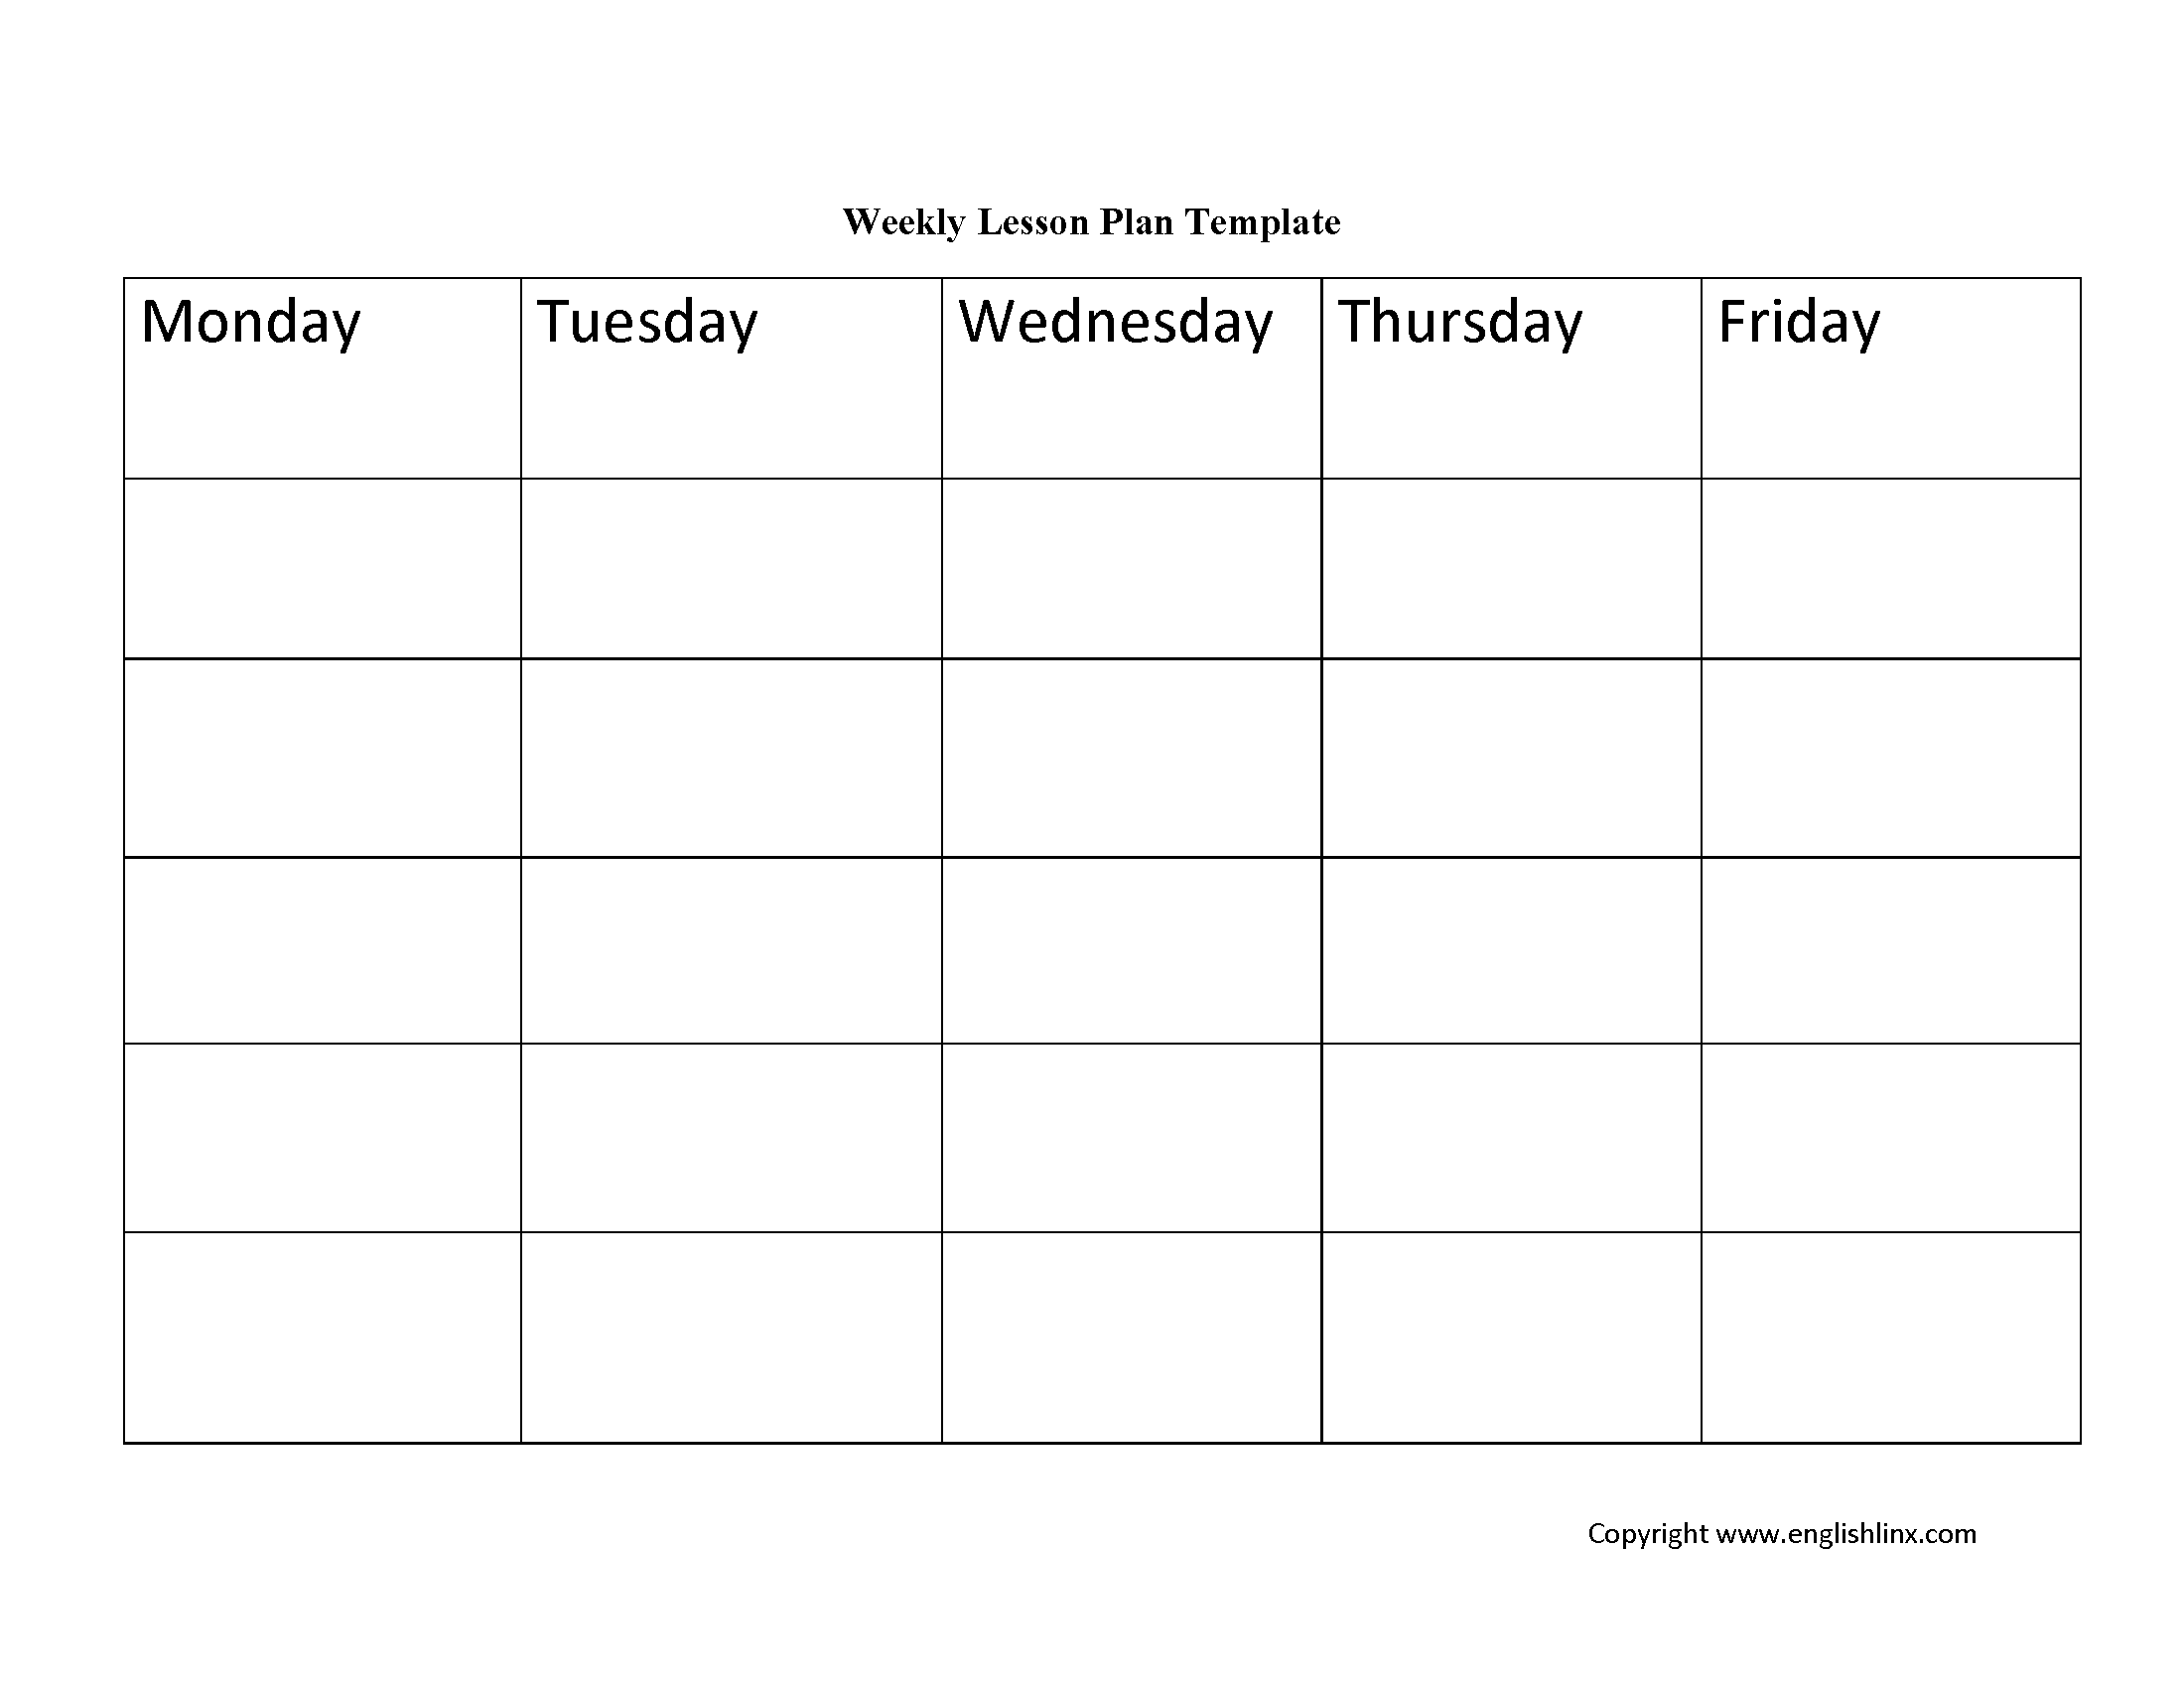 Englishlinxcom Lesson Plan Template - Free weekly lesson plan template